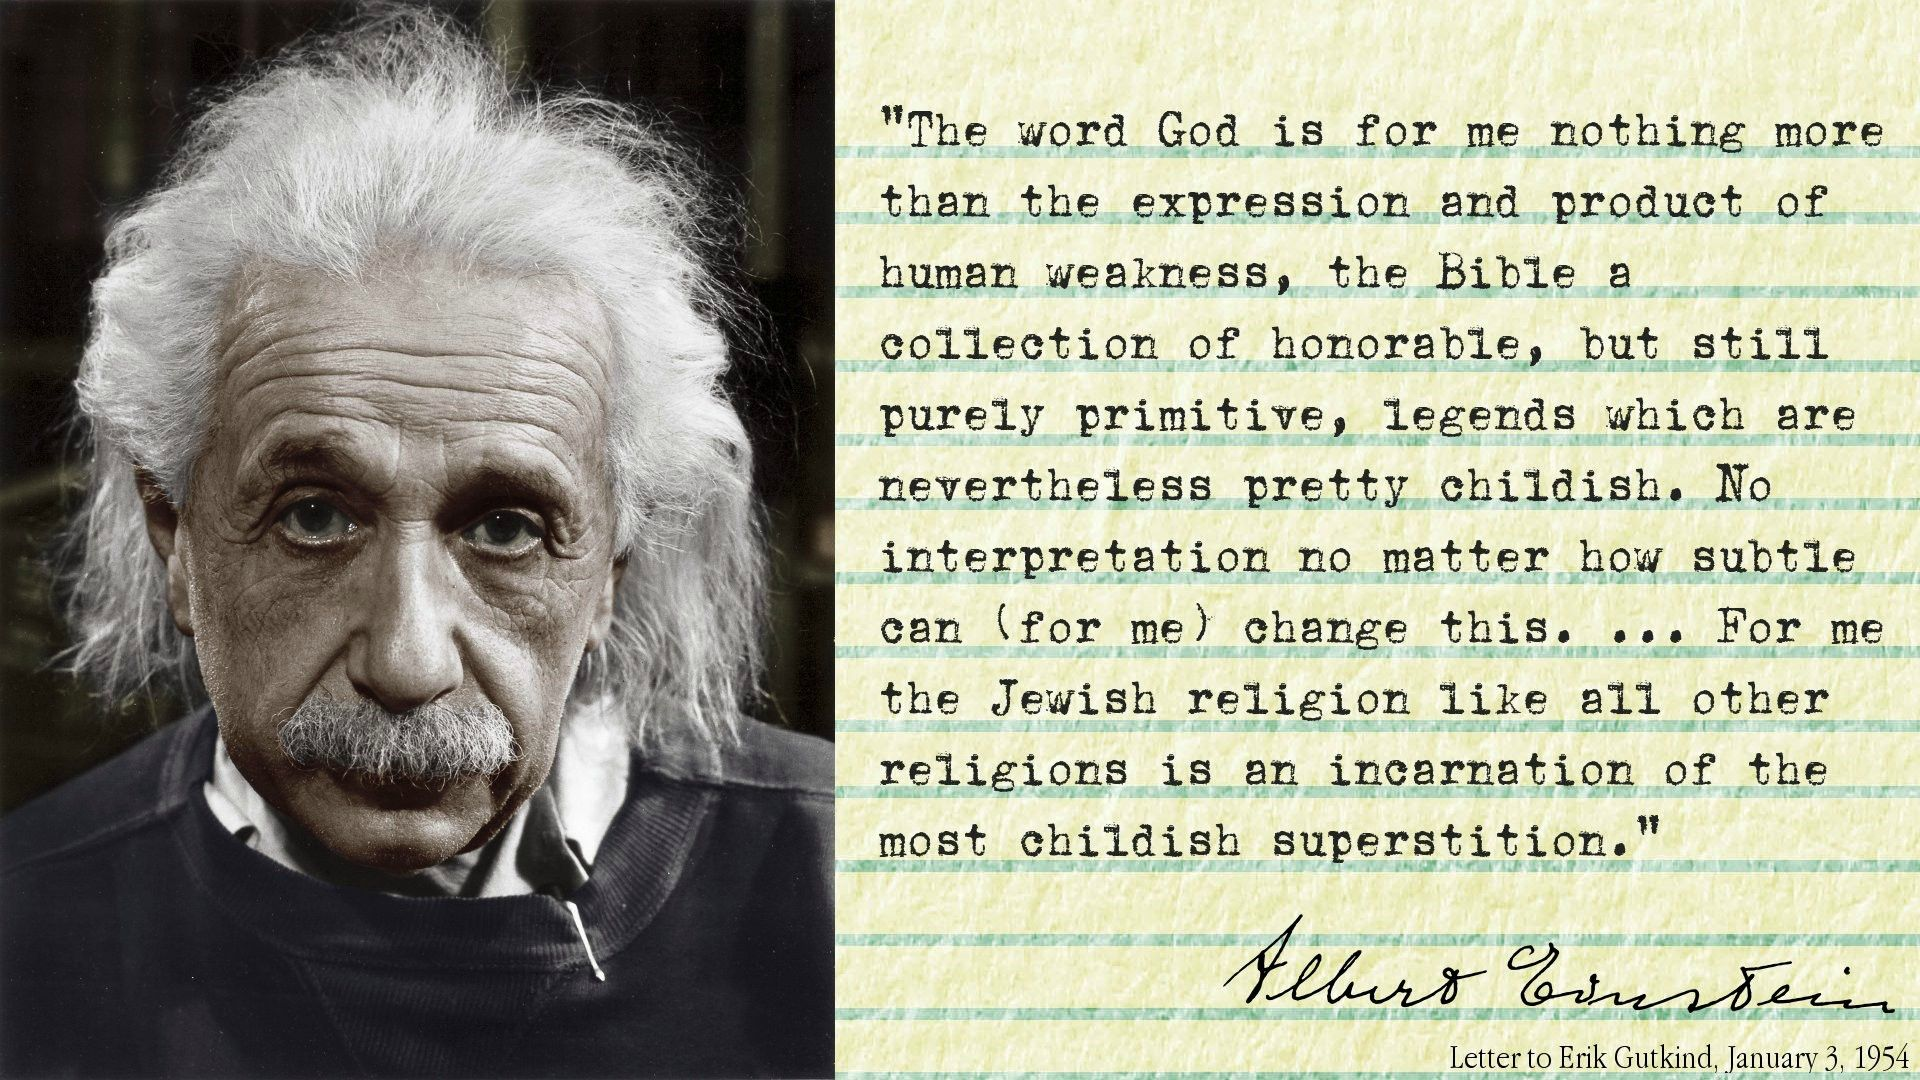 0011 Einstein on Religion (with reference information for